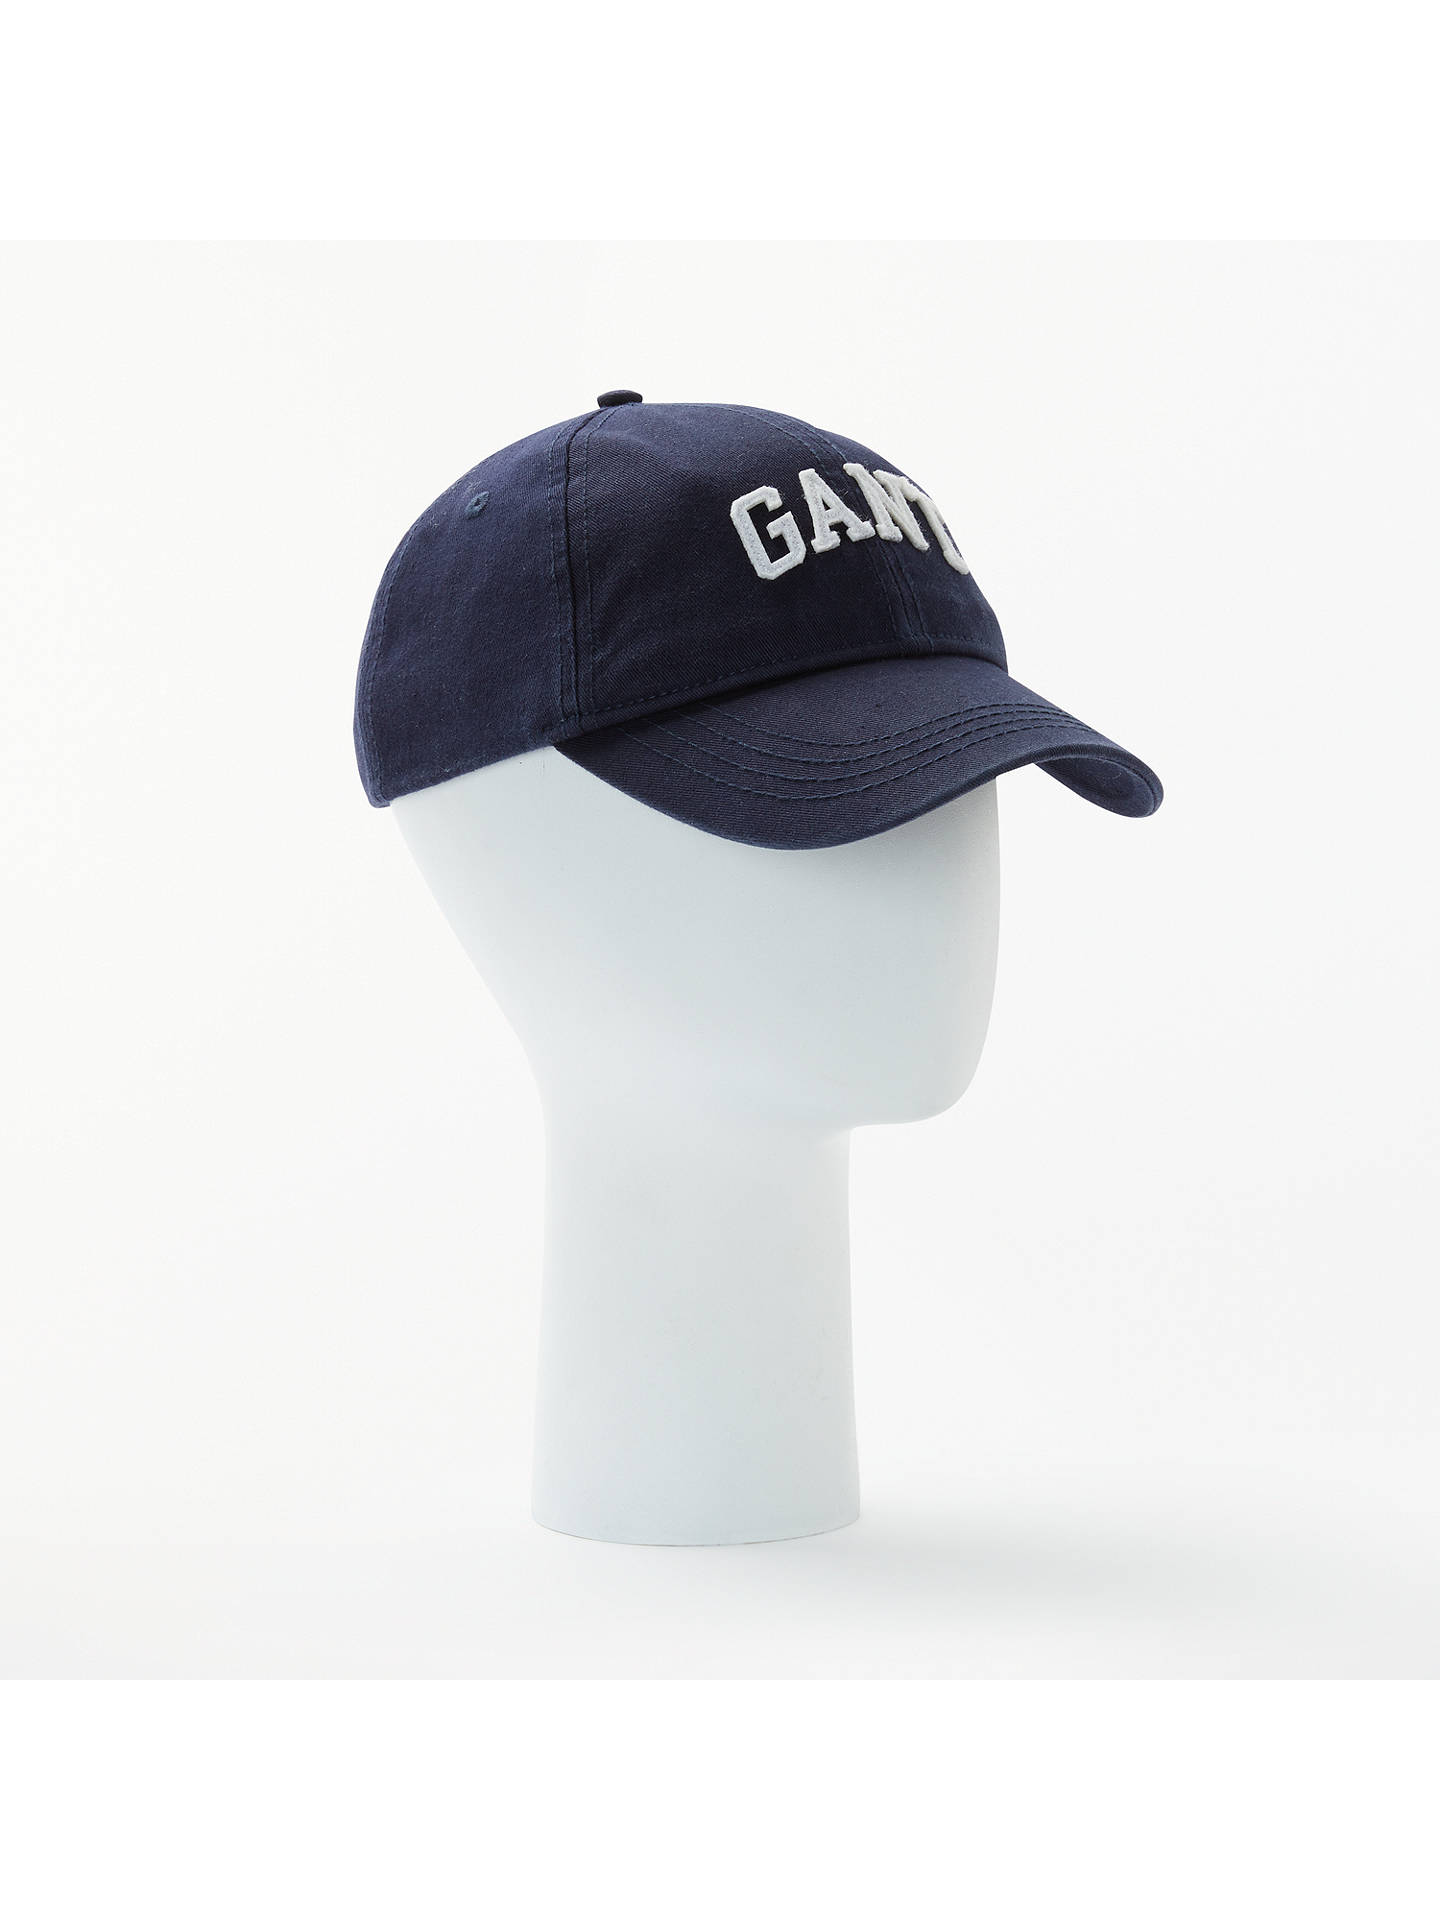 97c8b3a7 Buy GANT Washed Twill Baseball Cap, One Size, Navy Online at johnlewis.com  ...